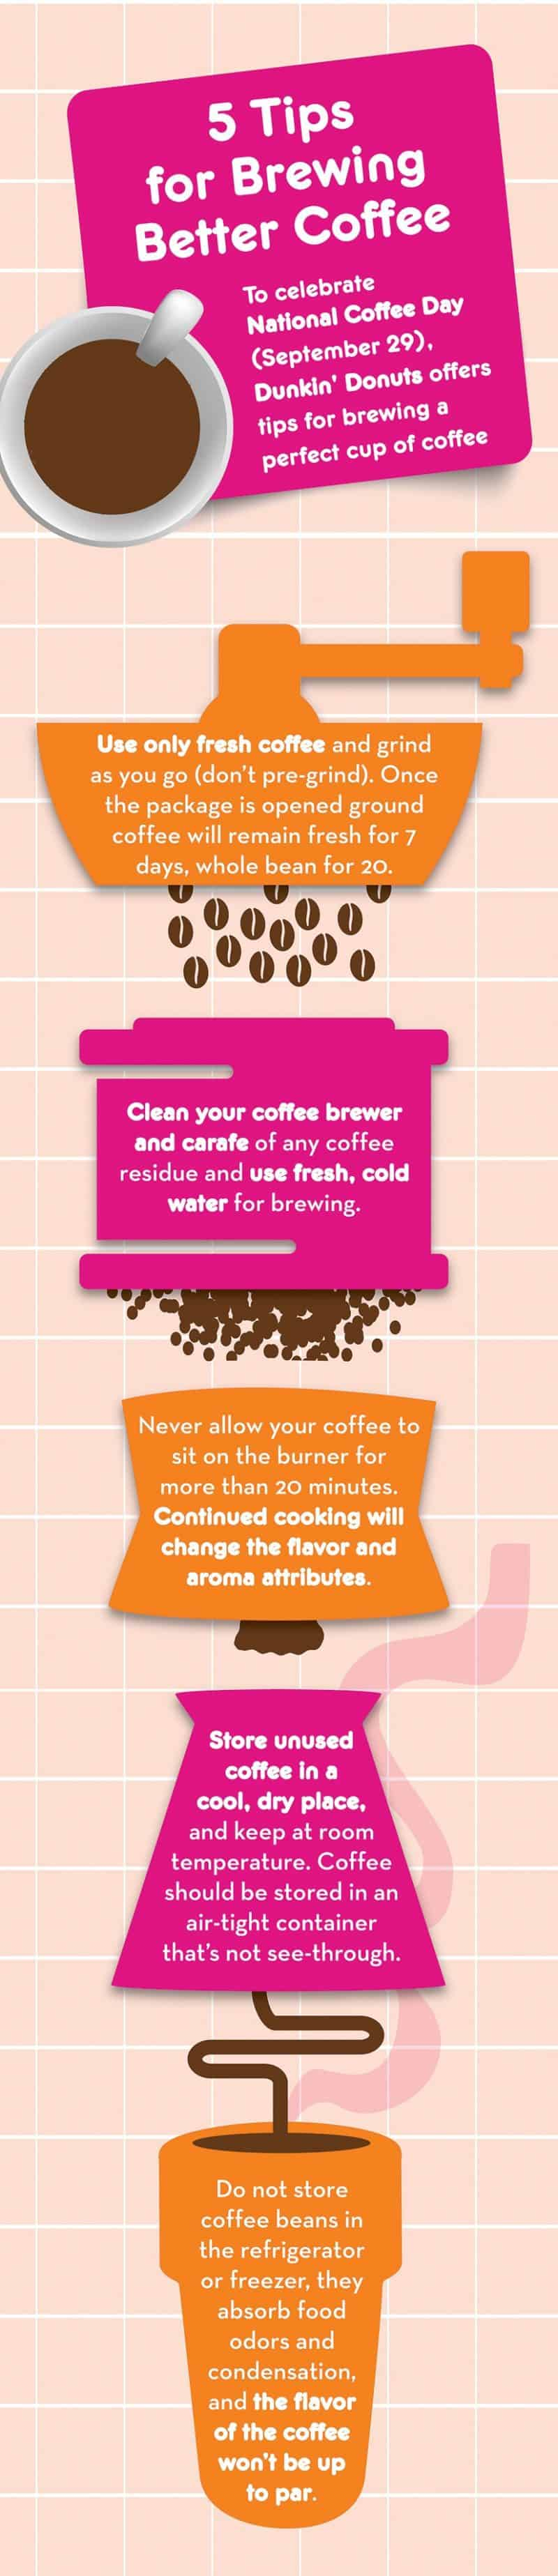 dunkin infographic